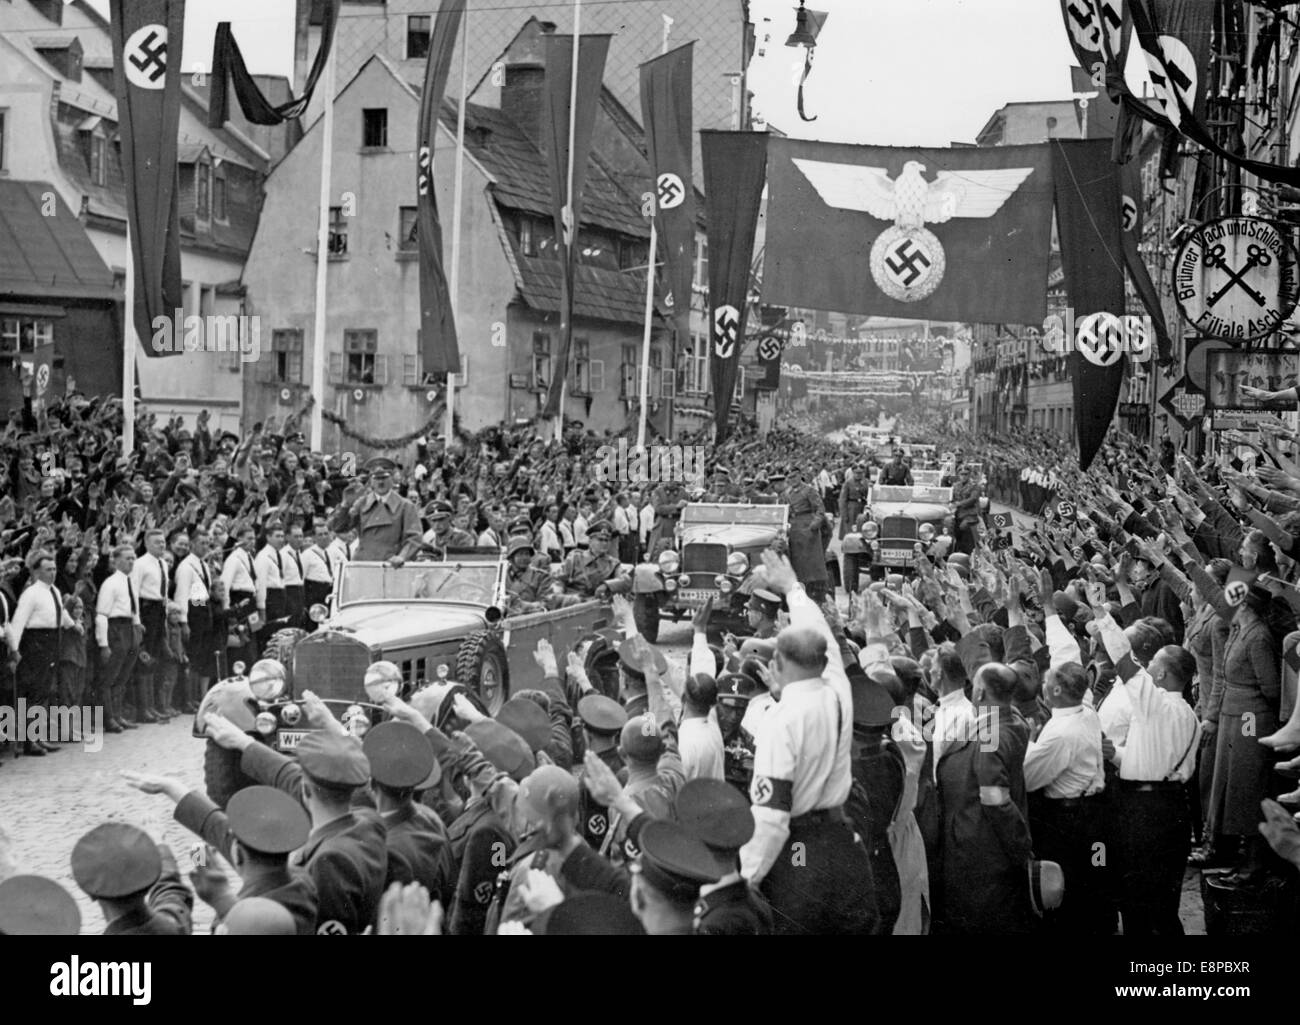 The photo from a Nazi news report shows three days after the Munich Agreement, Adolf Hitler rides into the town - Stock Image